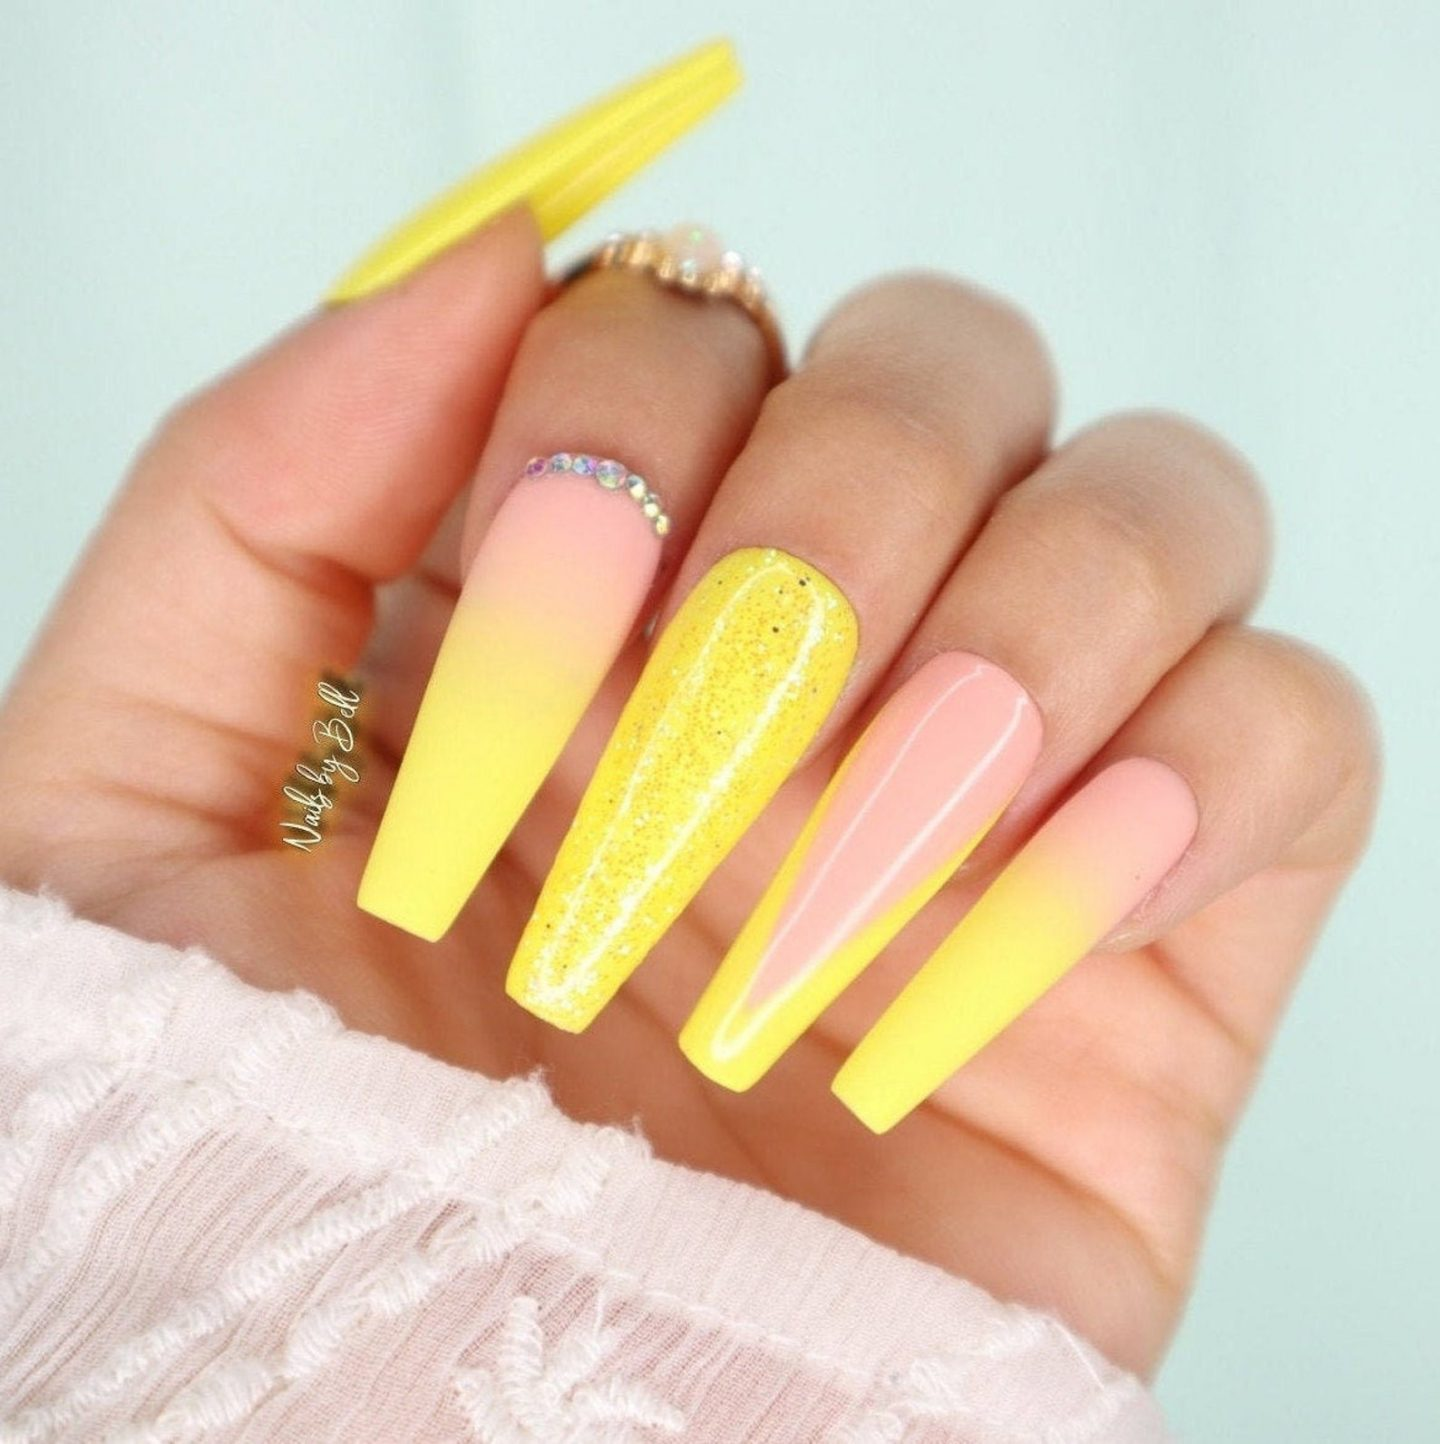 Yellow ombre French tip nails with glitter